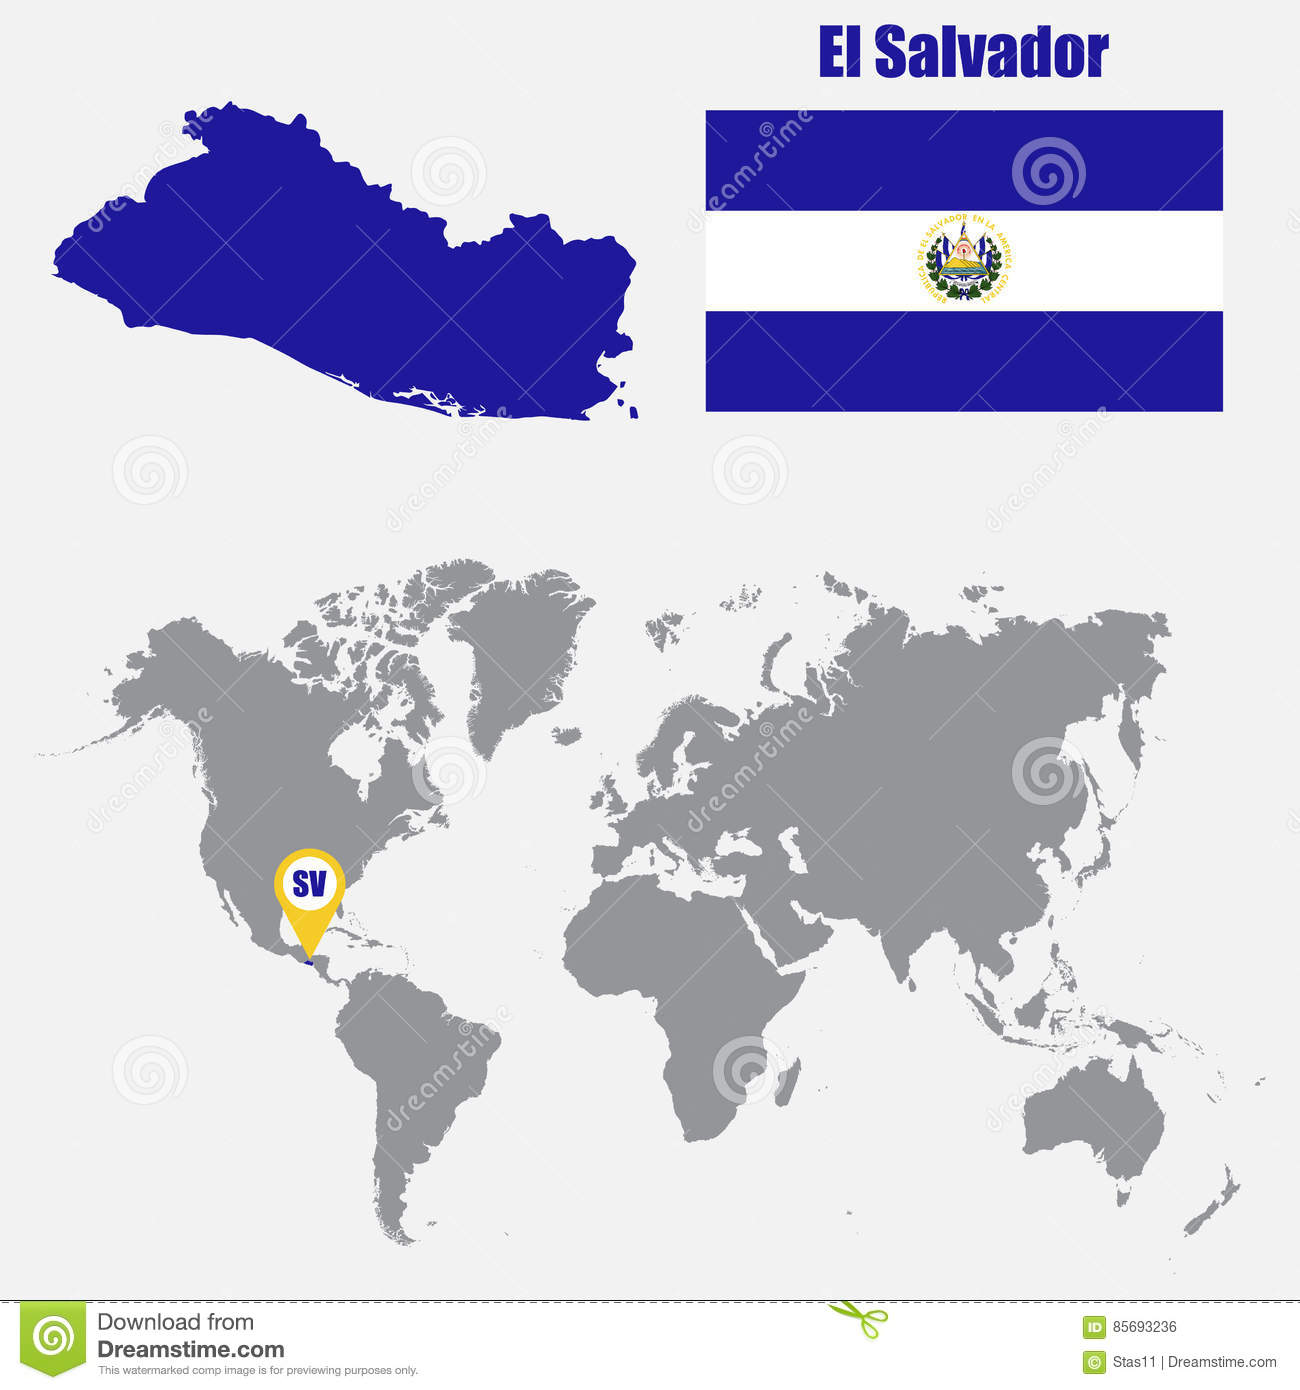 El salvador map on a world map with flag and map pointer vector el salvador map on a world map with flag and map pointer vector illustration gumiabroncs Choice Image